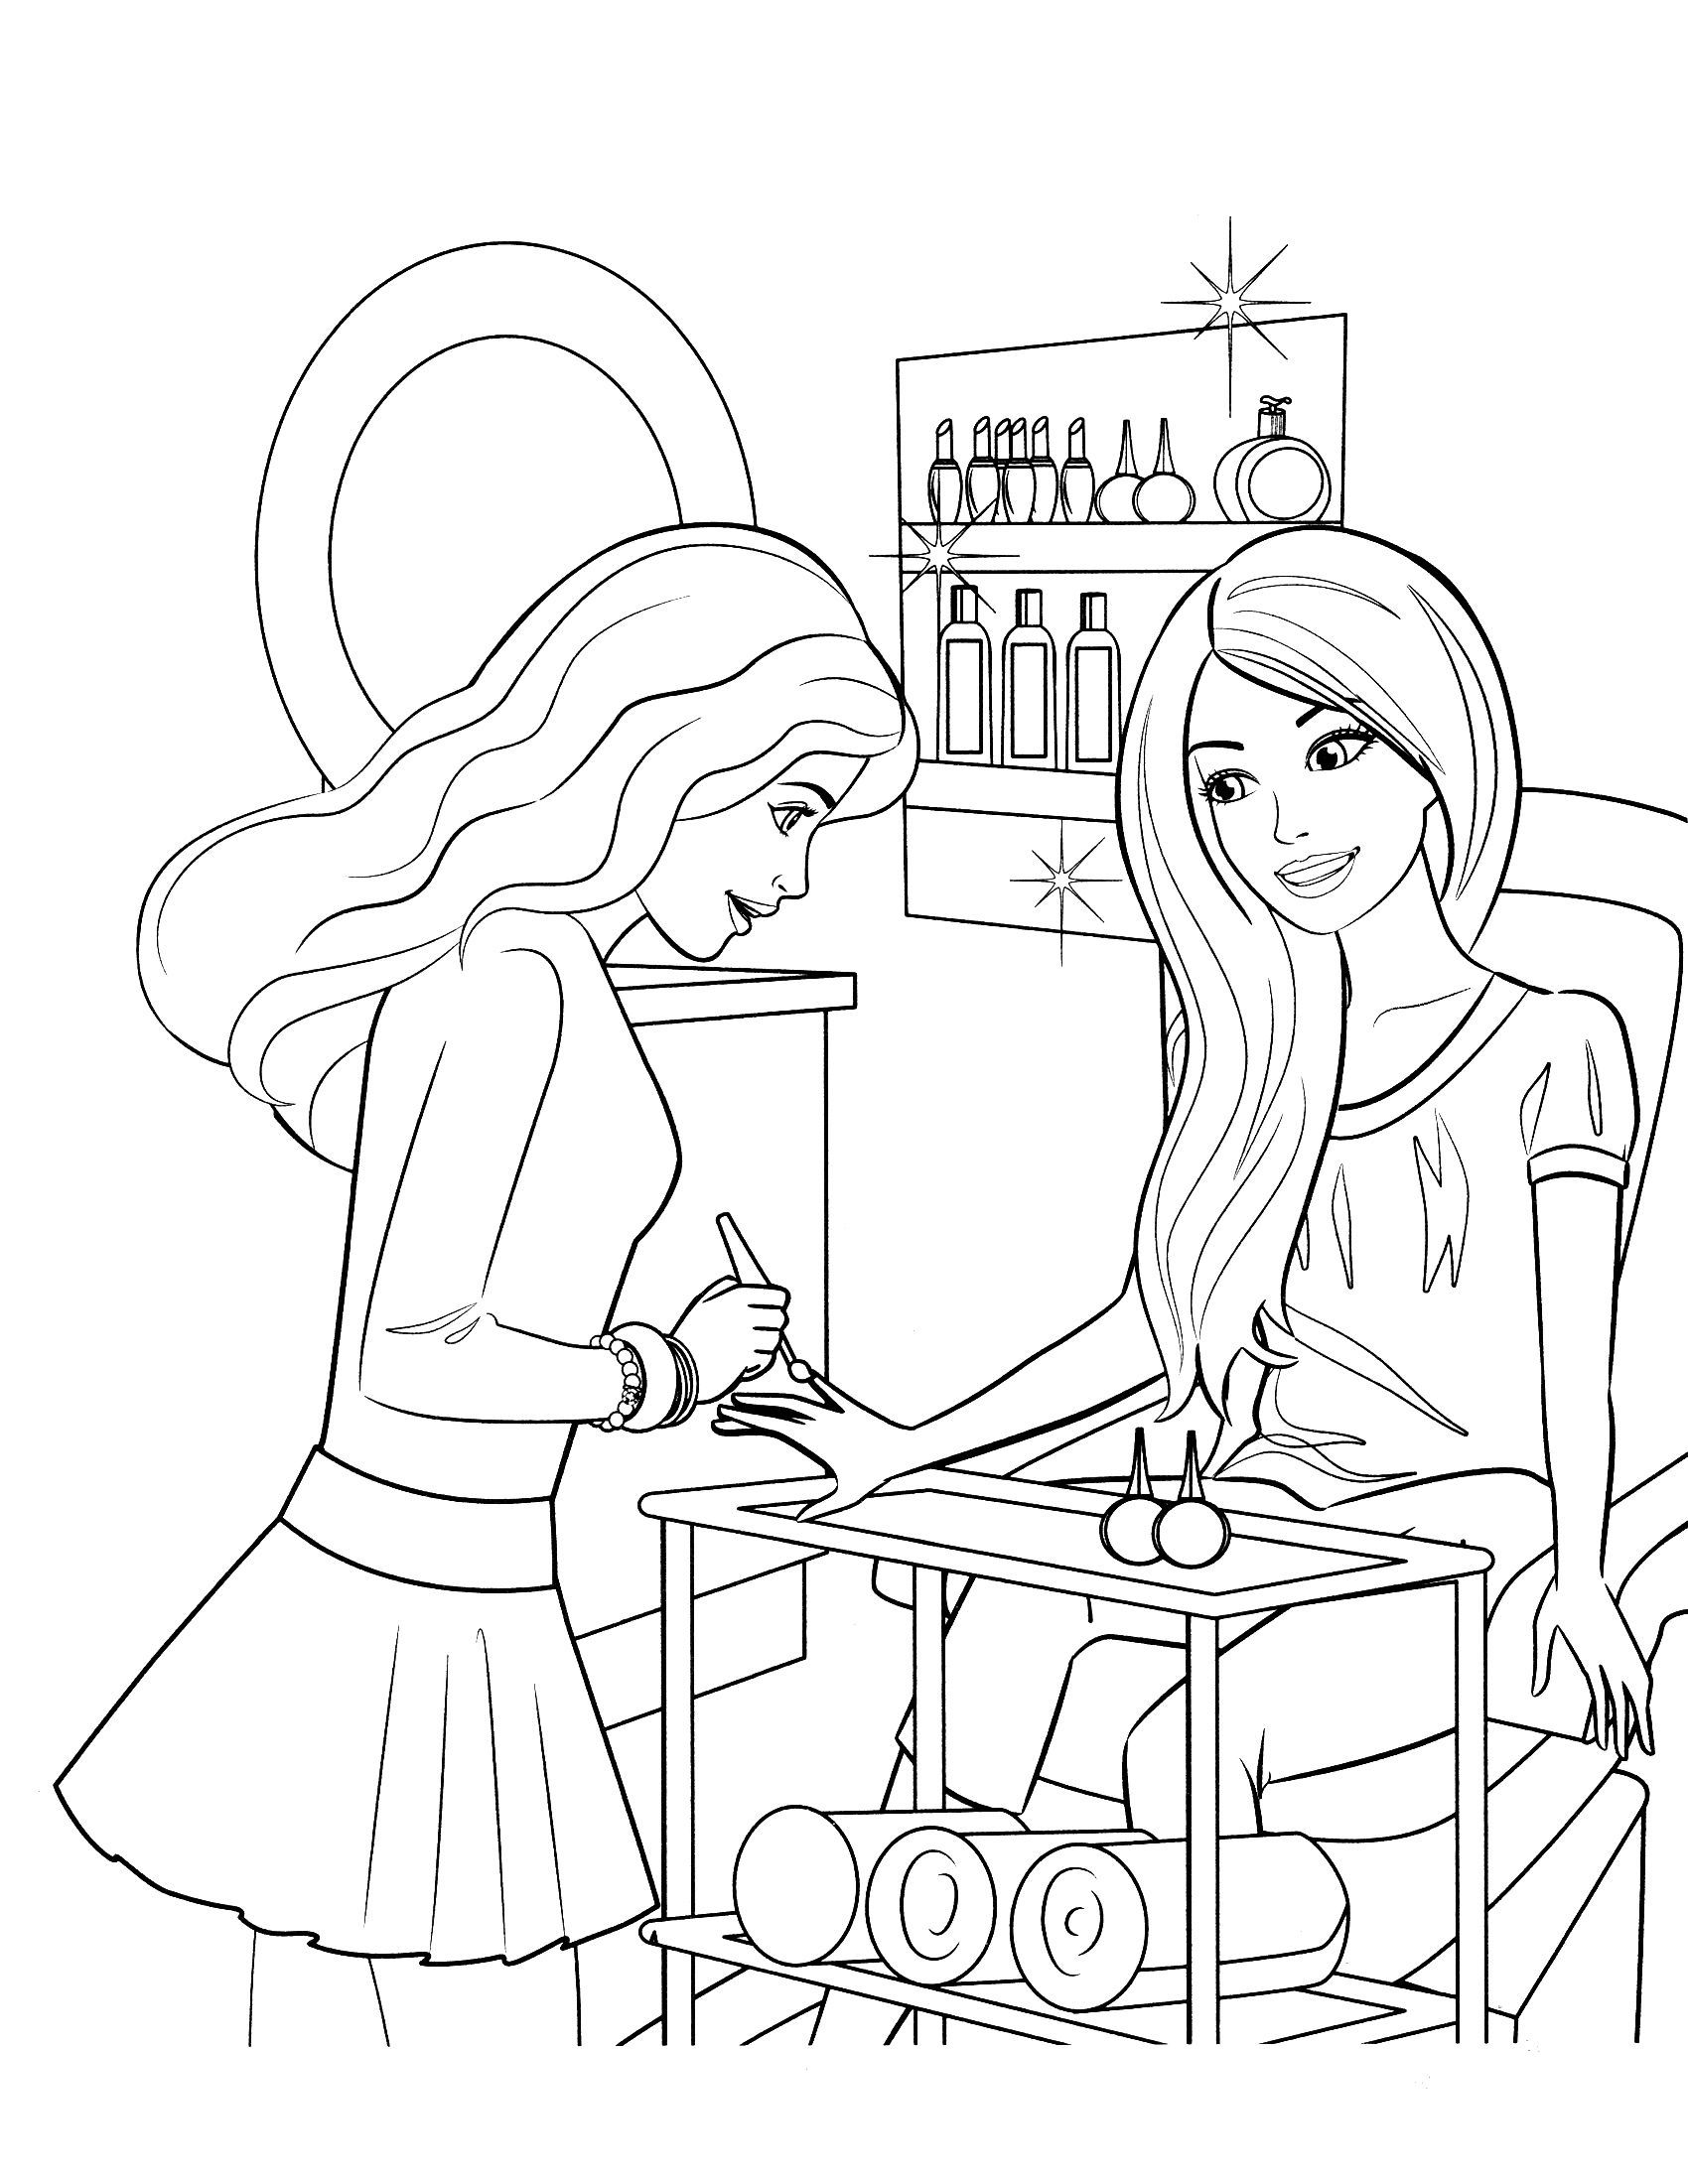 Free Printable Barbie Coloring Pages For Kids Barbie Drawing Barbie Coloring Pages Barbie Drawing Barbie Coloring